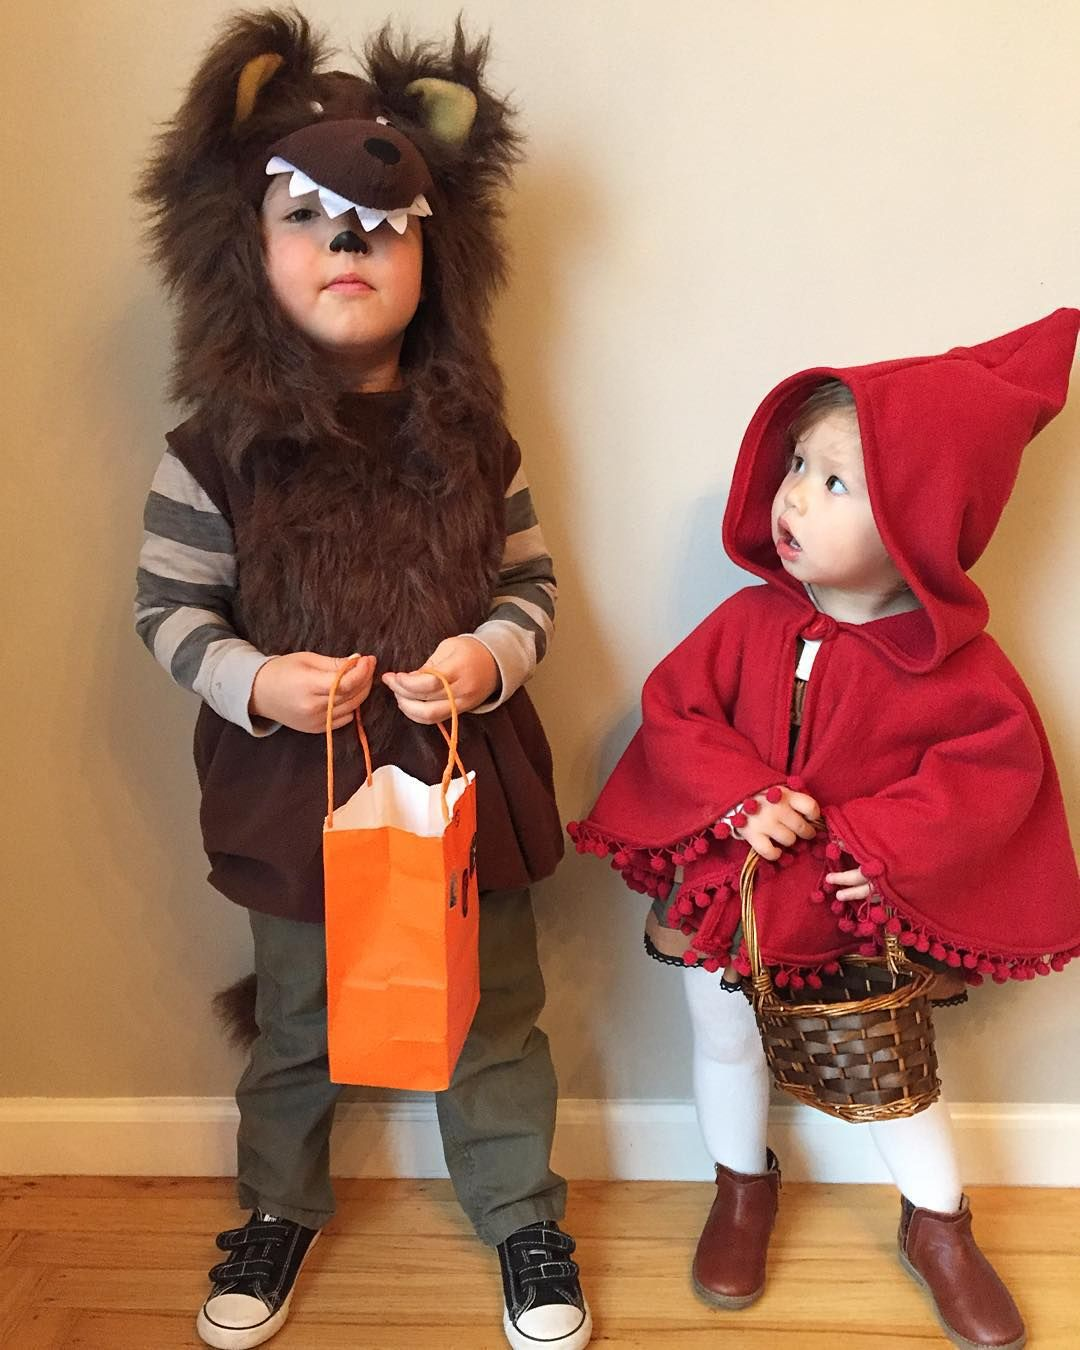 Costume Ideas Cute: Little Red Riding Hood & The Wolf Siblings Costumes